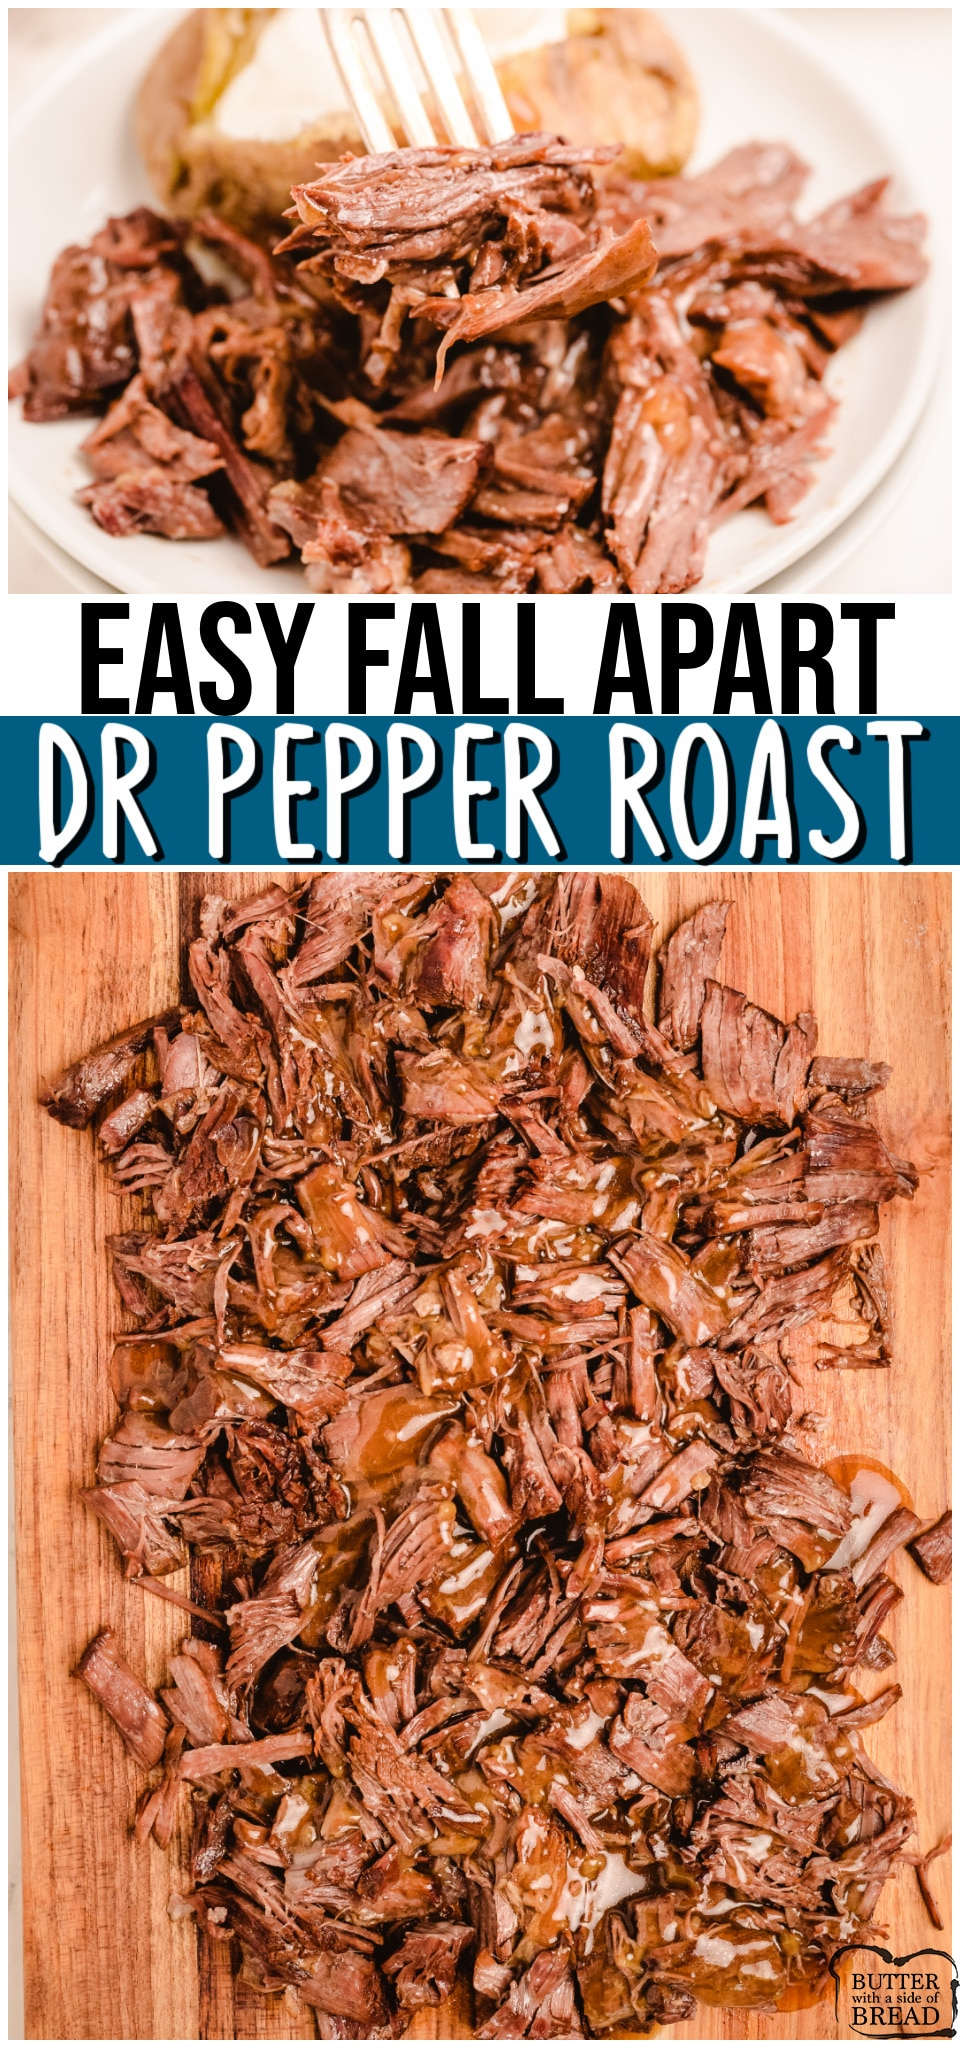 Slow Cooker Dr. Pepper Roast is an easy to make, tender roast made with just 5 ingredients. Packed full of flavor, this crockpot roast recipe is perfect for any Dr. Pepper lover. #beef #roast #fallapart #DrPepper #dinner #easyrecipe from BUTTER WITH A SIDE OF BREAD